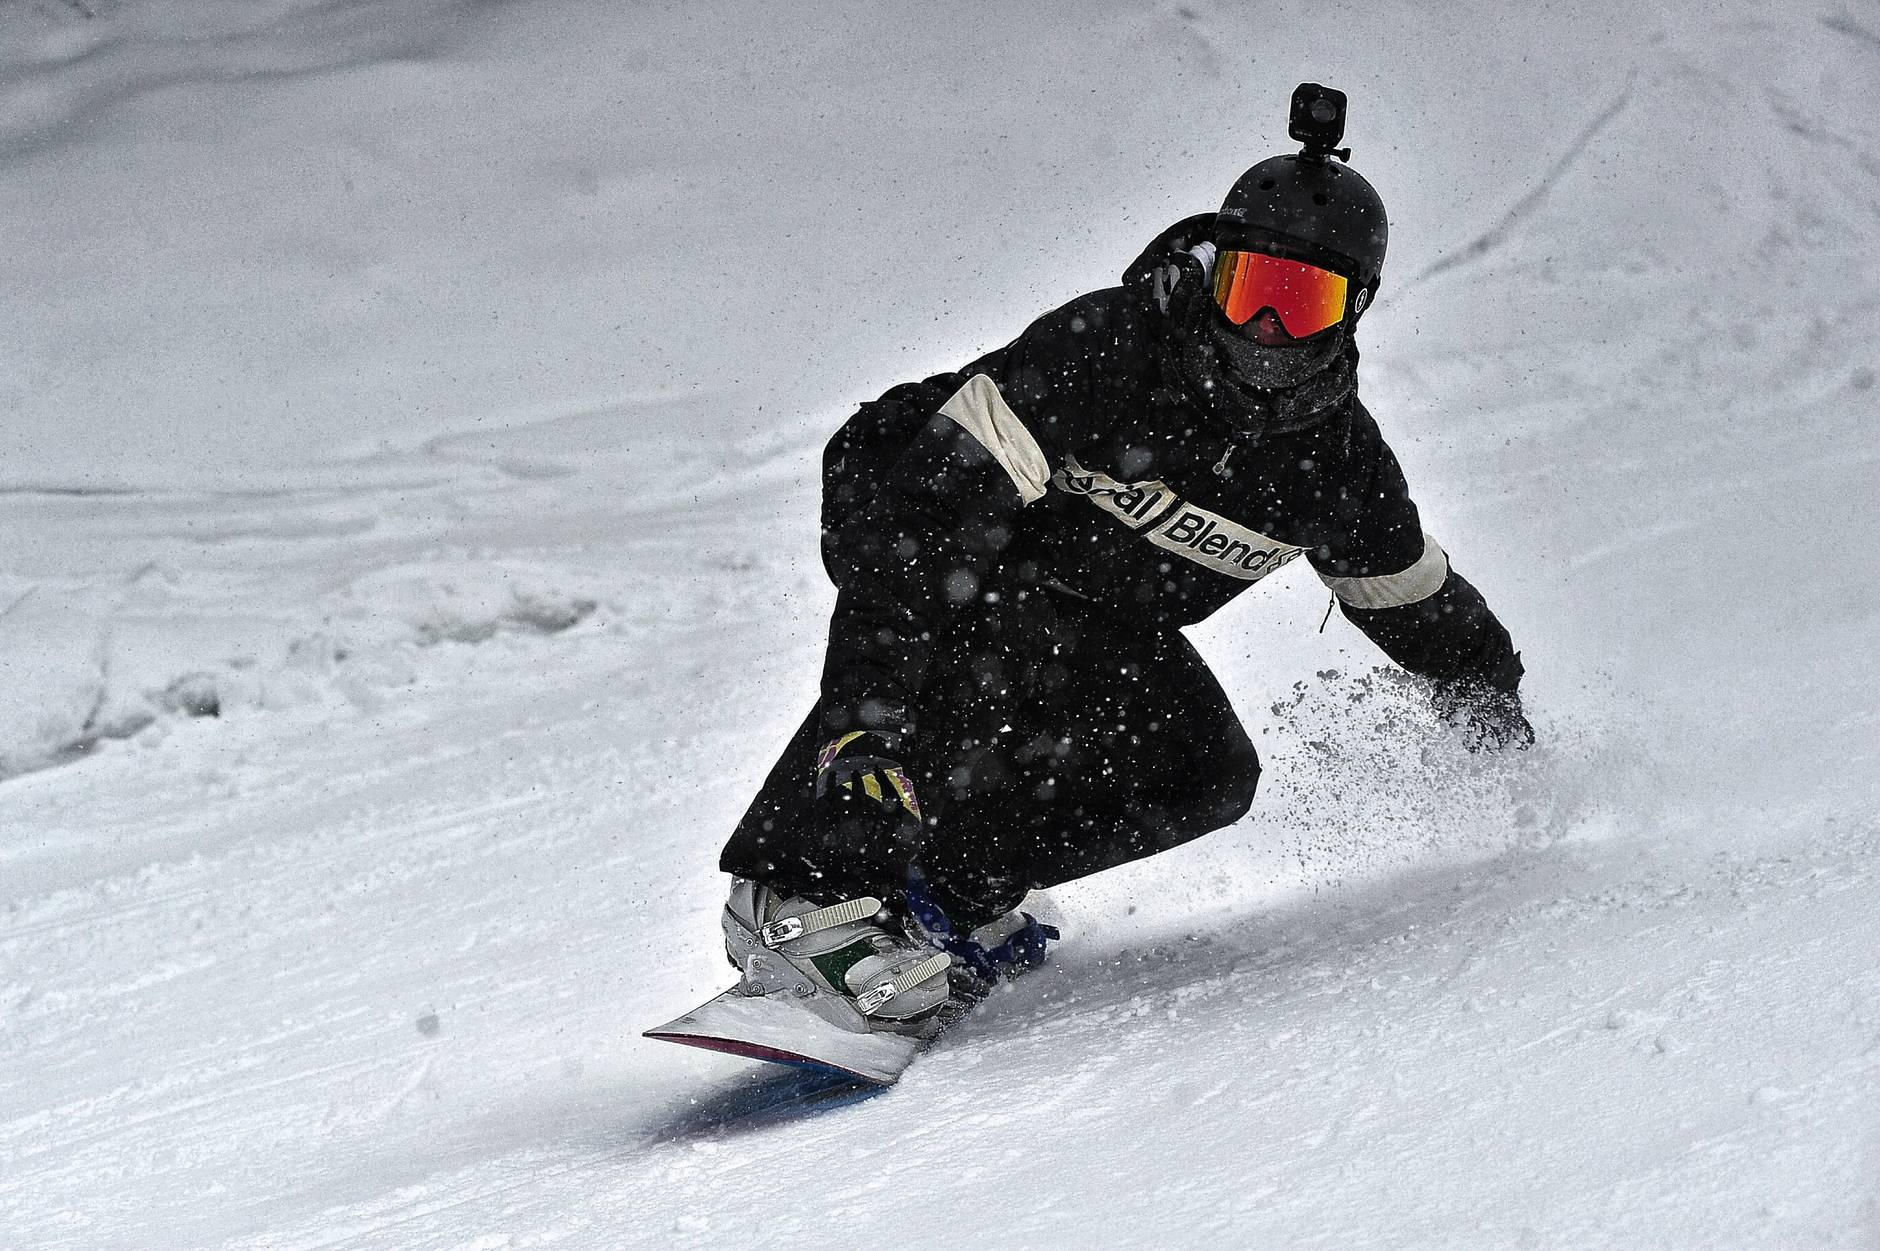 person in black jacket and black pants riding on snowboard